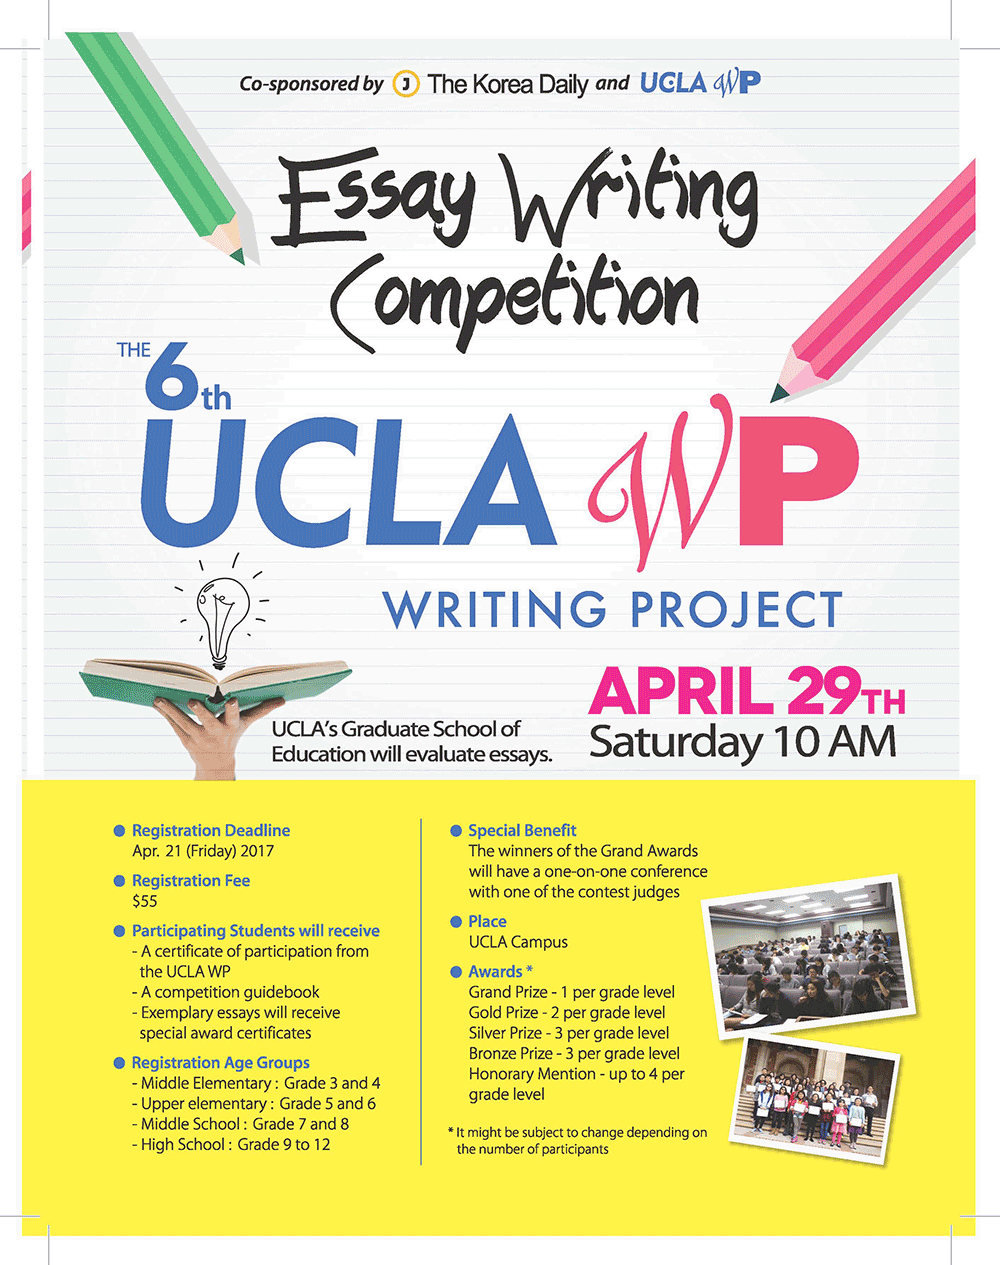 008 Essay Writing Contest Example Uclakoreandaily Incredible International Competitions For High School Students Rules By Essayhub Full